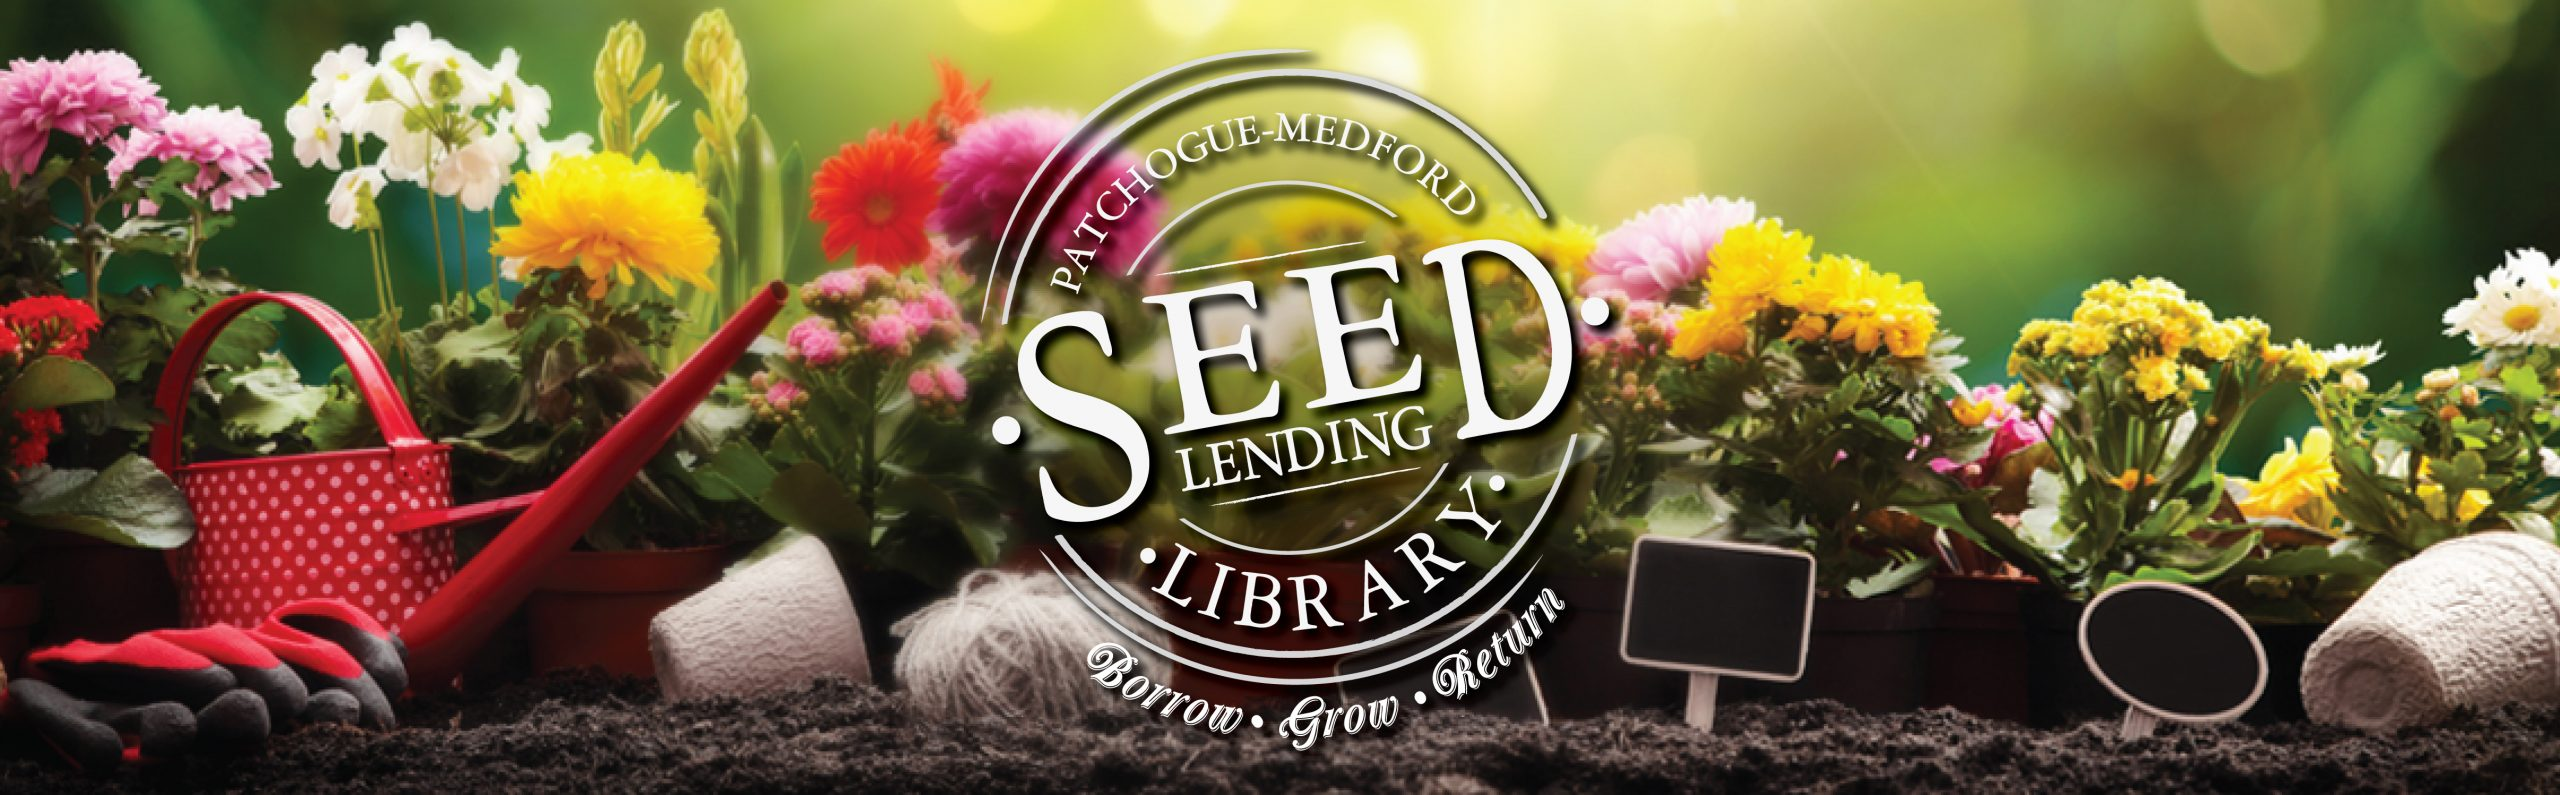 Patchogue-Medford Seed Lending Library